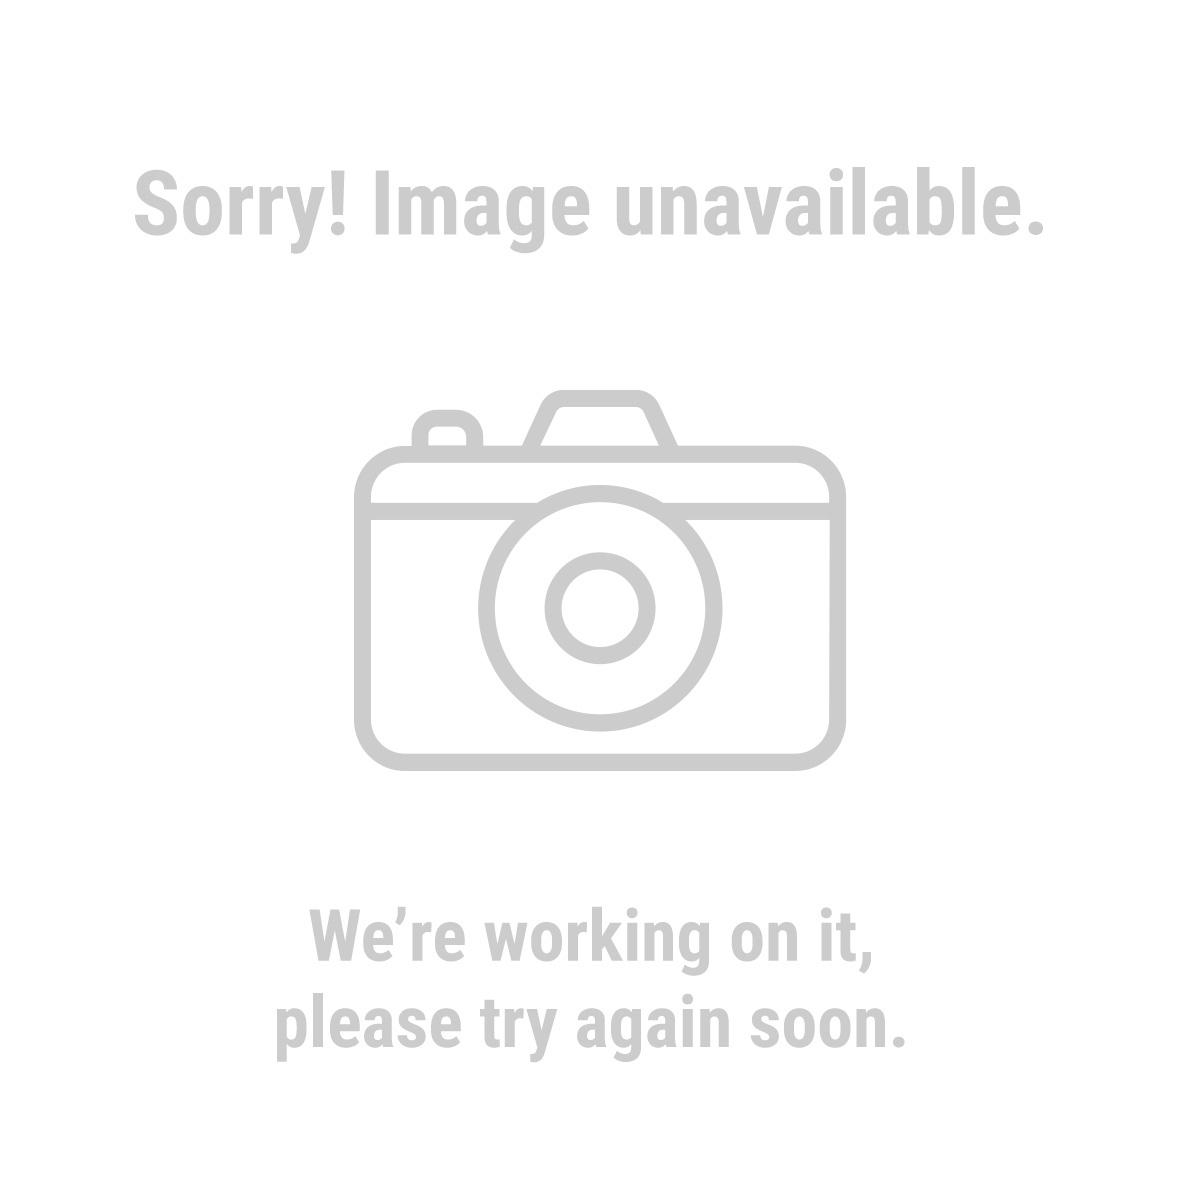 HARDY 66290 5 Pair Cotton Gloves